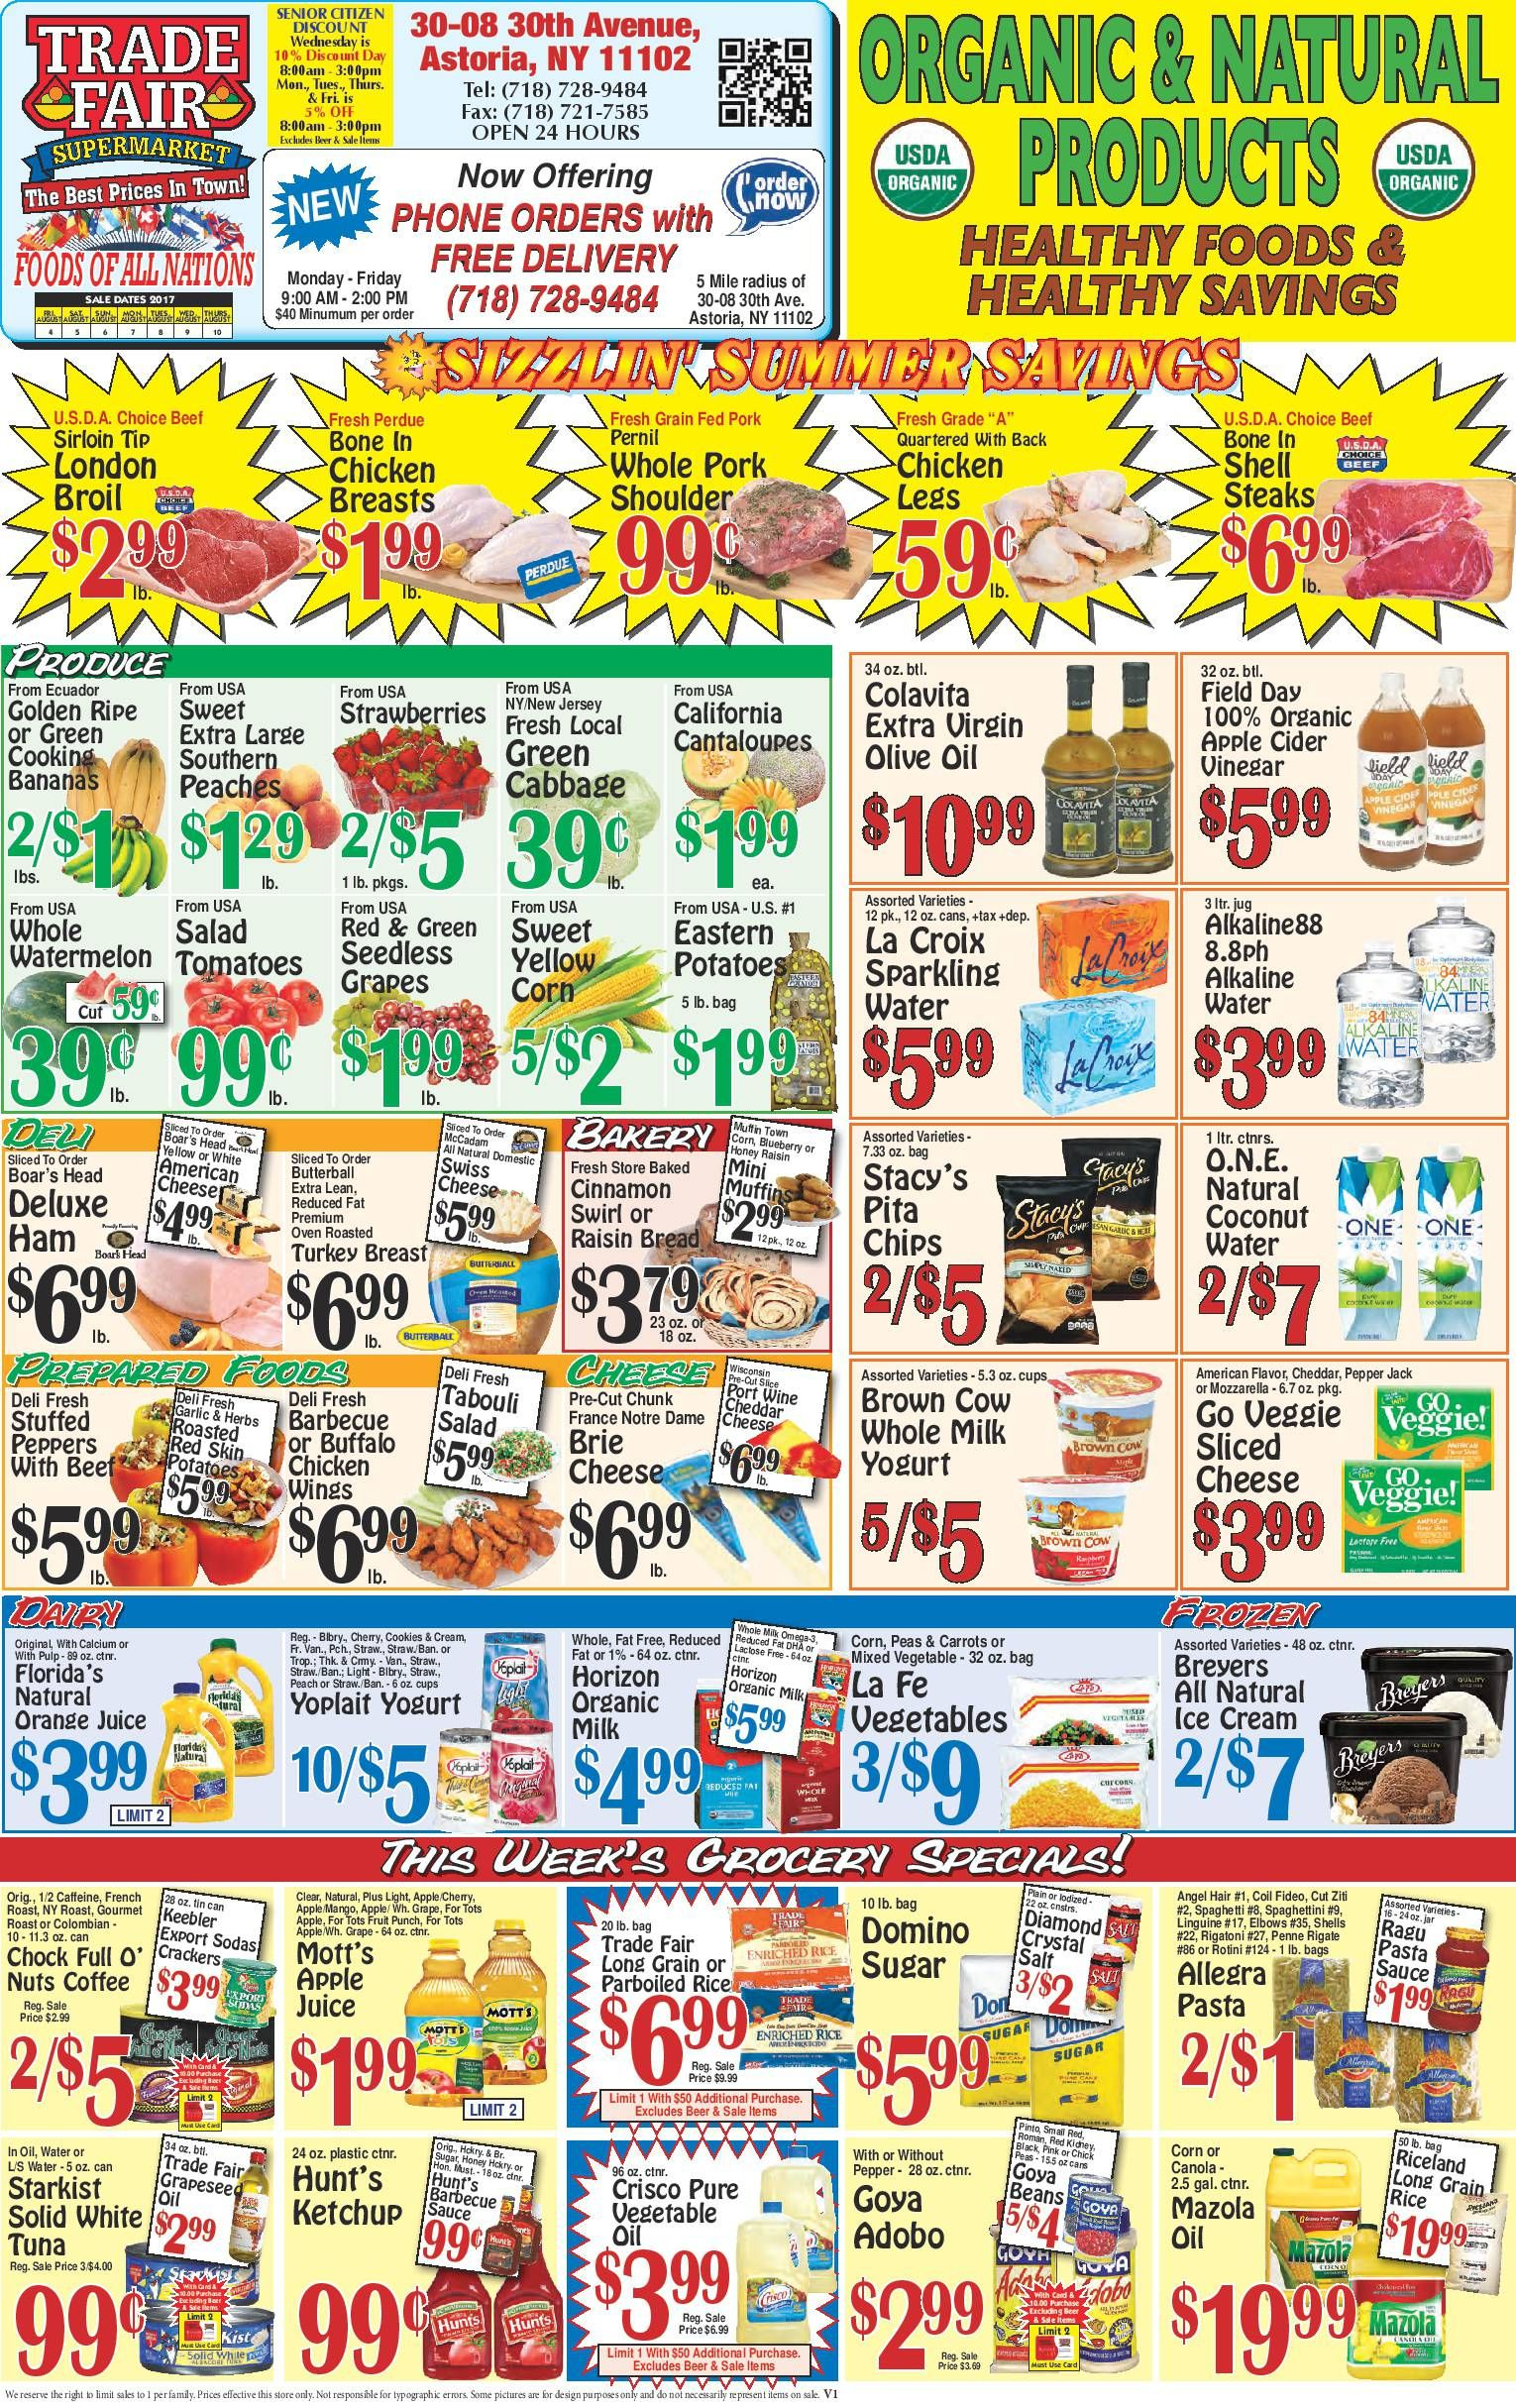 Trade fair supermarket weekly ad august 4 10 2017